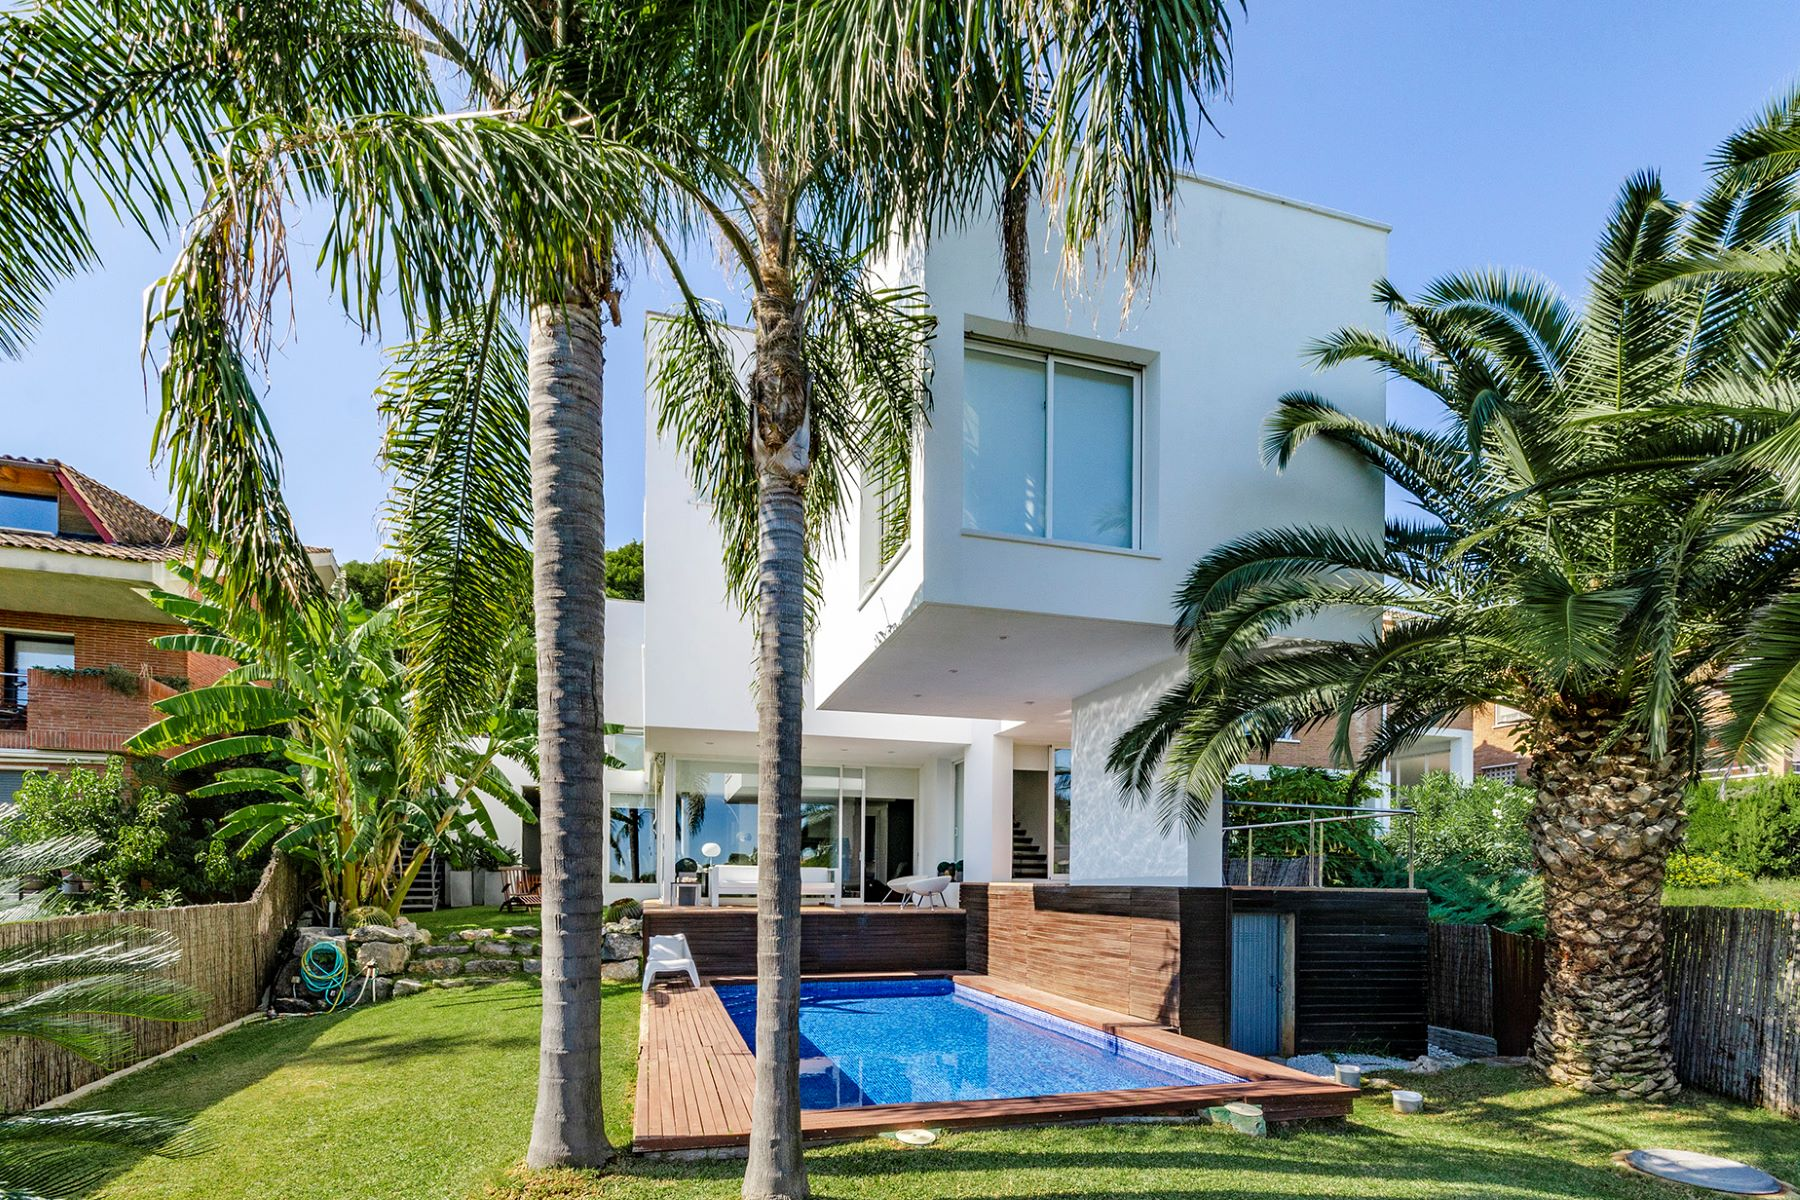 Single Family Home for Sale at Exclusive villa in residential area of Castelldefels Castelldefels, Barcelona 08866 Spain